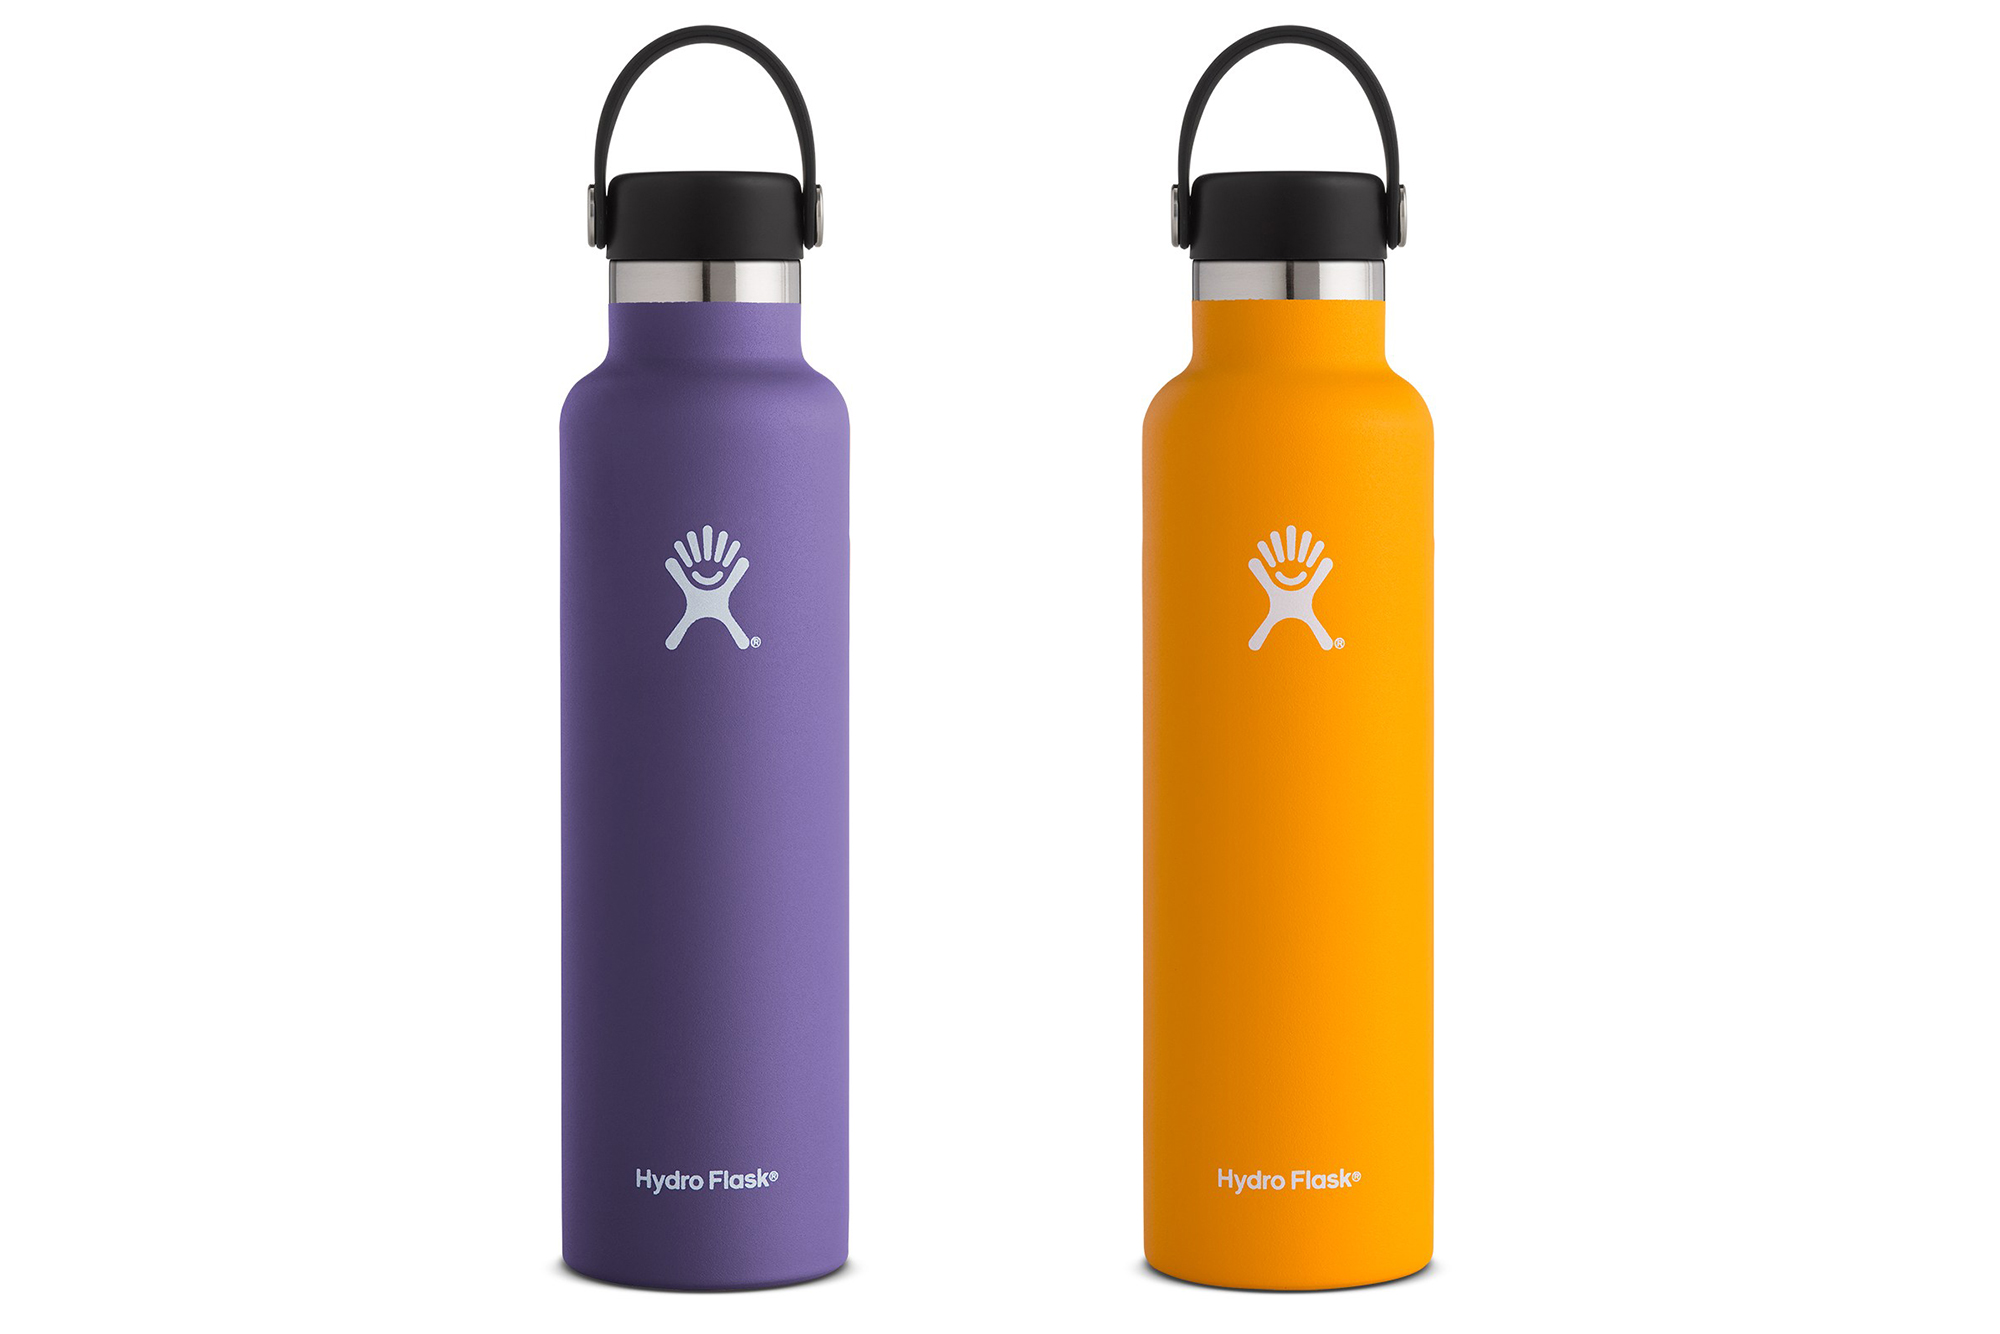 hydro flask bottles